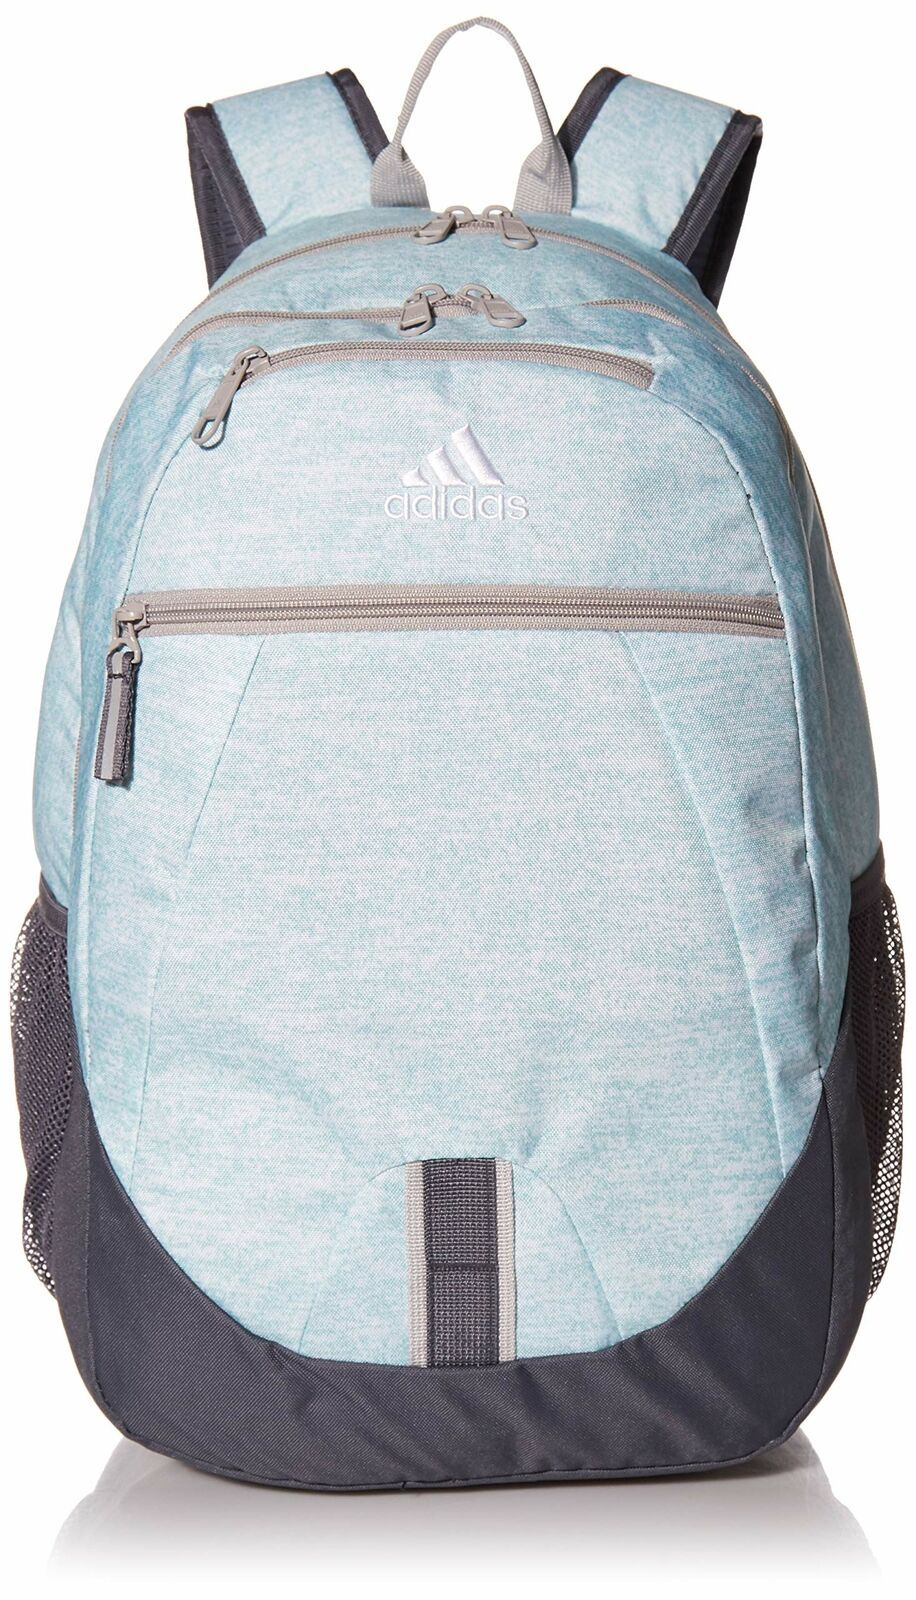 adidas Foundation Backpack One Size Clear Mint/Onix/Gy/Wh V5 - $34.28